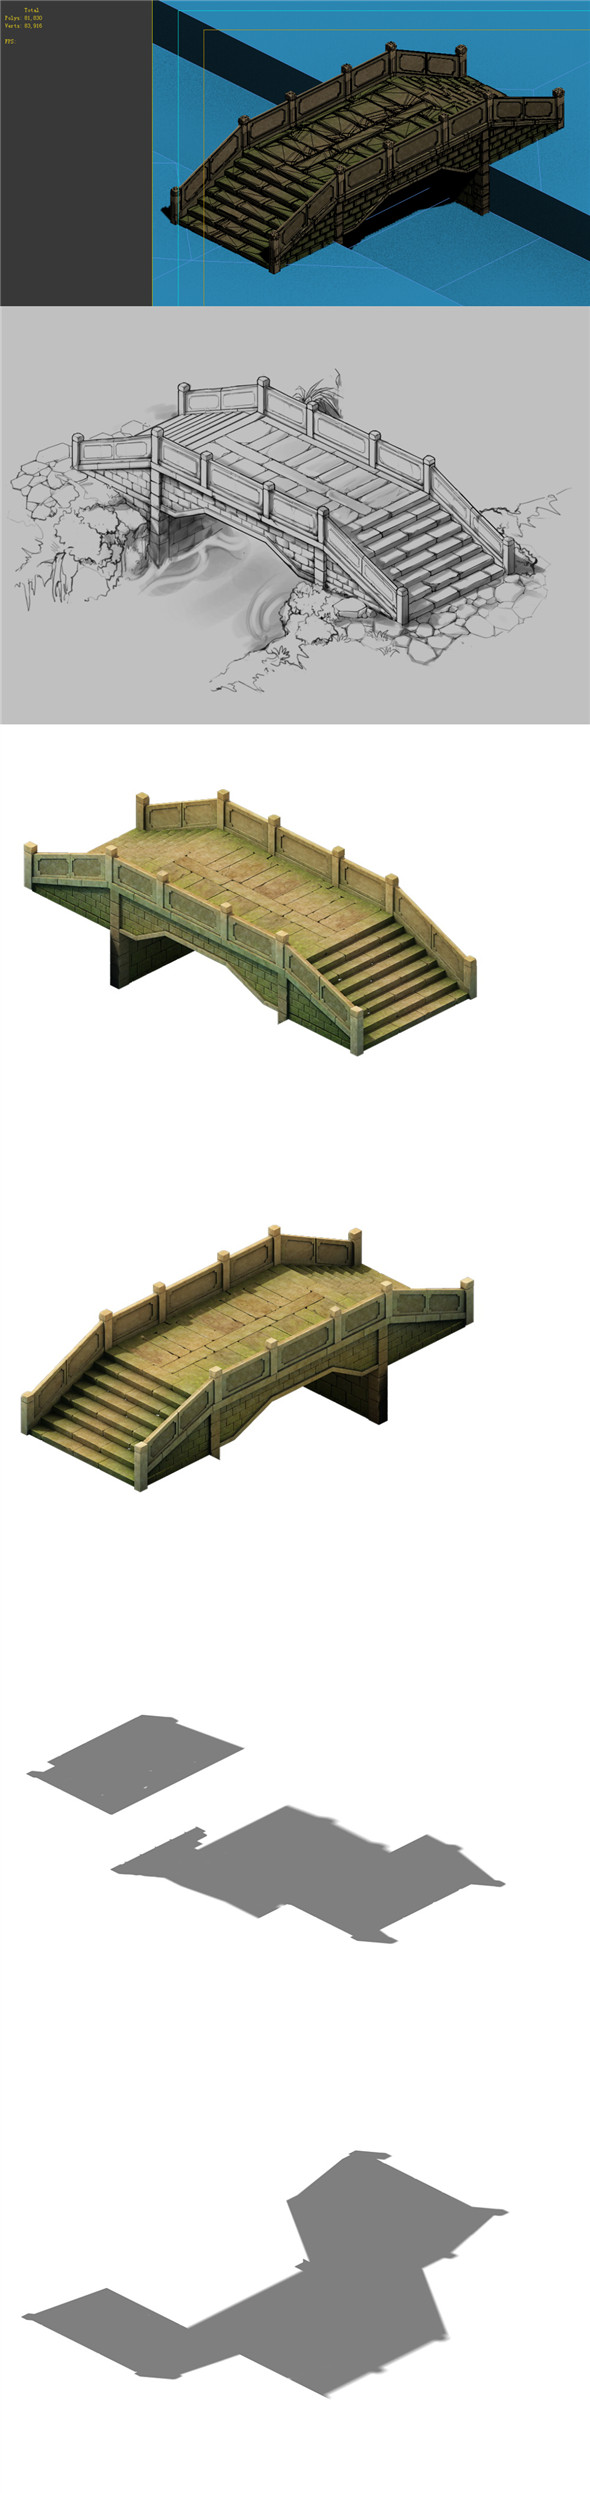 Game Model - prairie scene - Stone Bridge 02 01 - 3DOcean Item for Sale